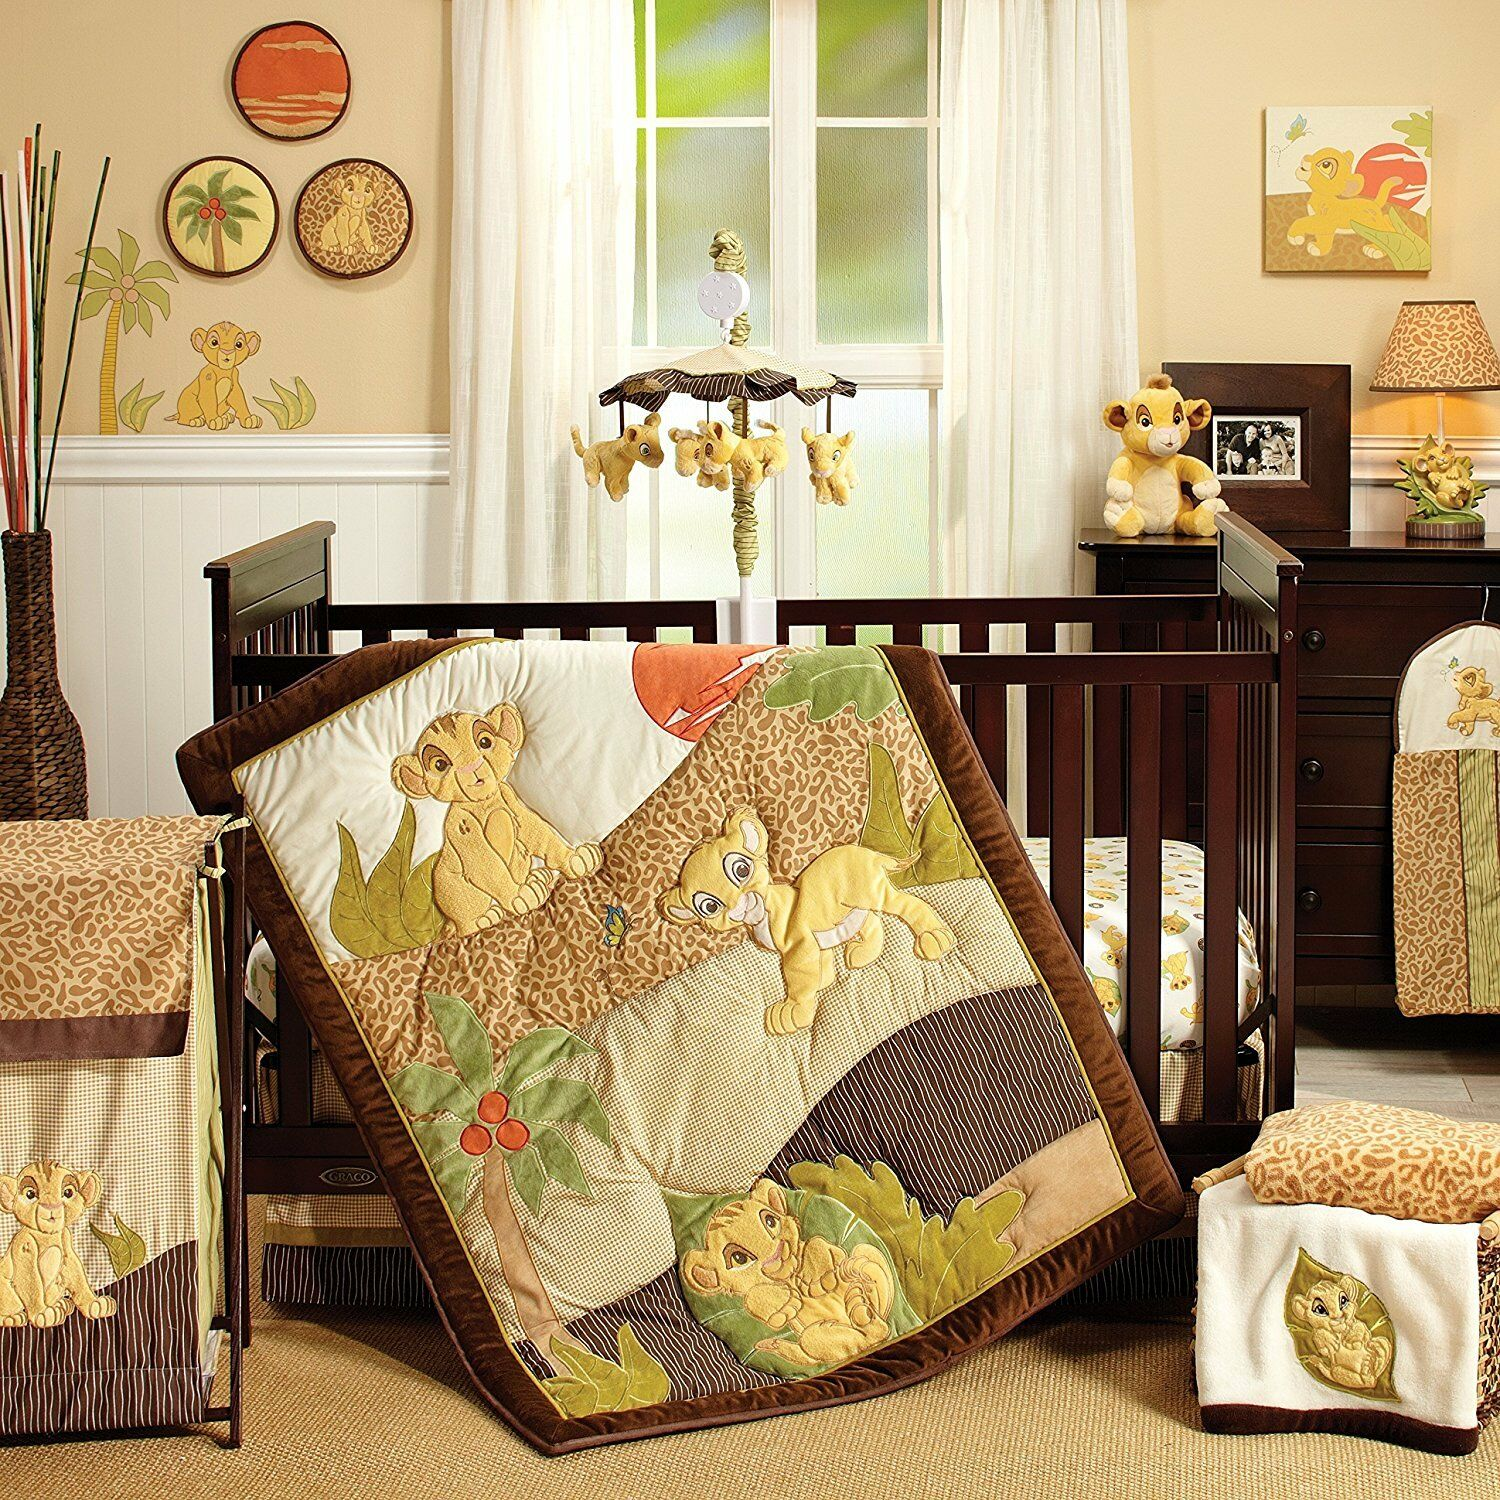 Disney Baby - Lion King 7 Piece Crib Set